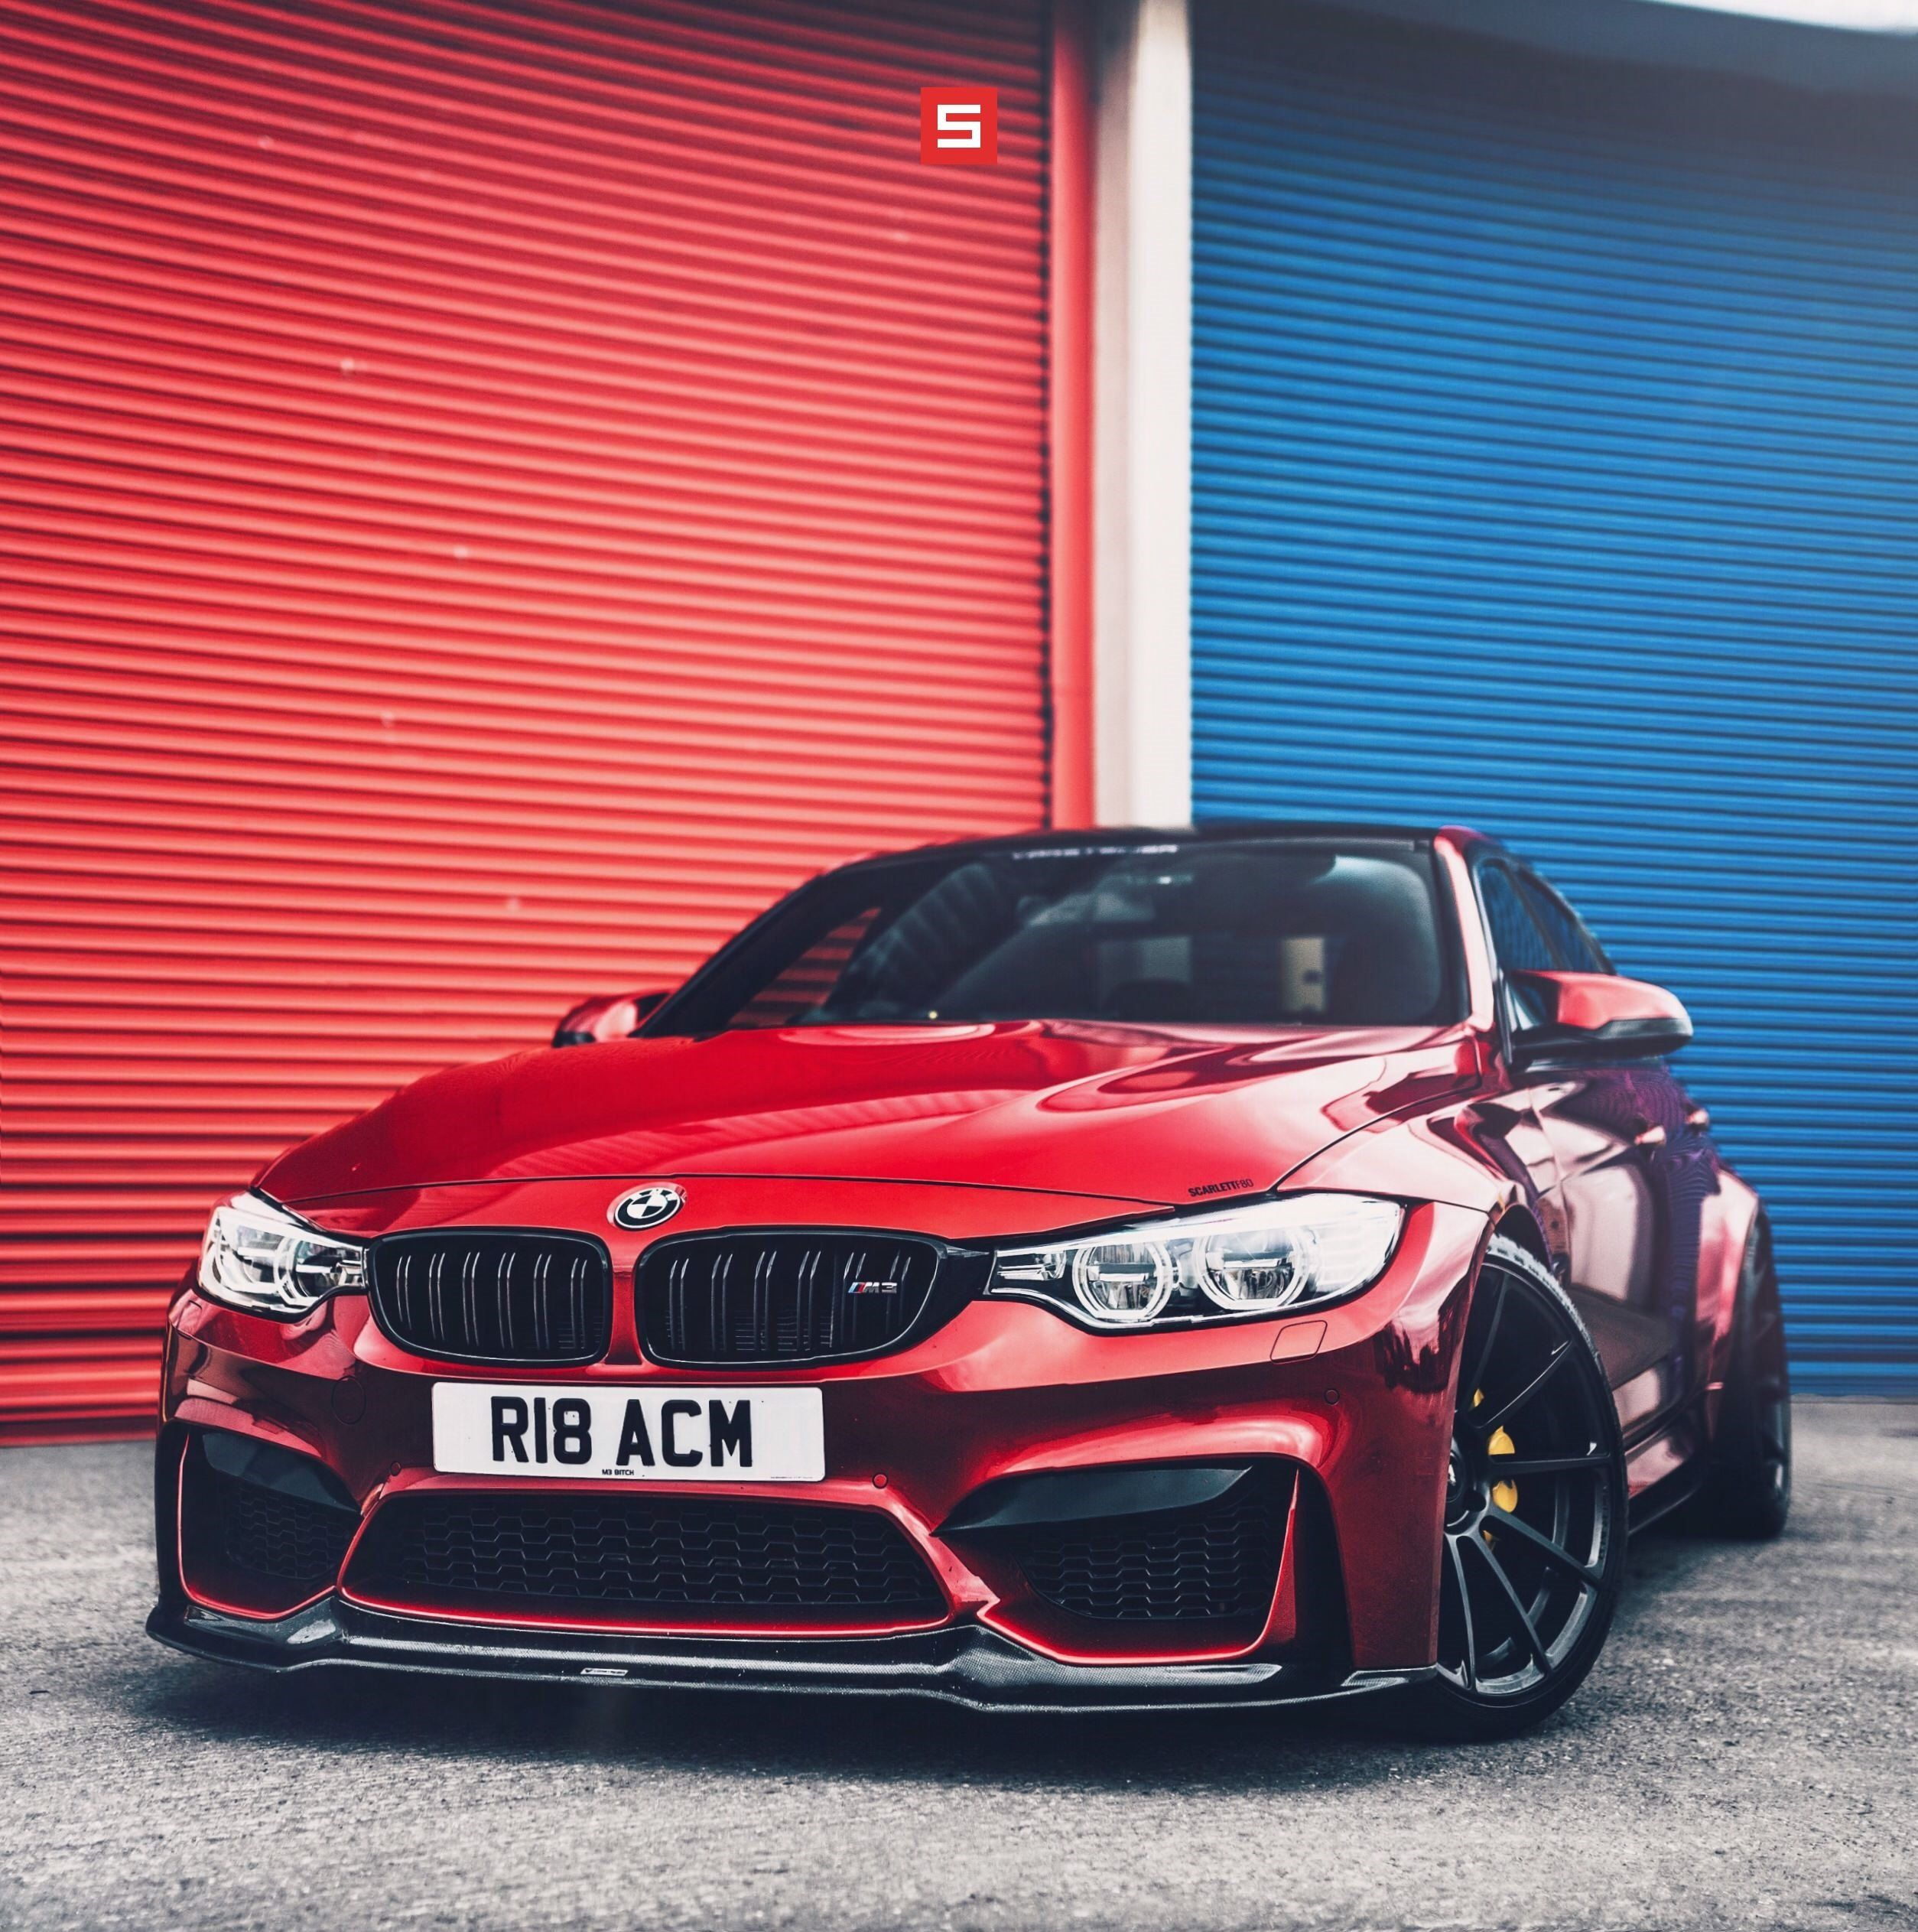 Peculiar Red Paint Of Bespoke Bmw 3 Series Magnitizes The Crowd